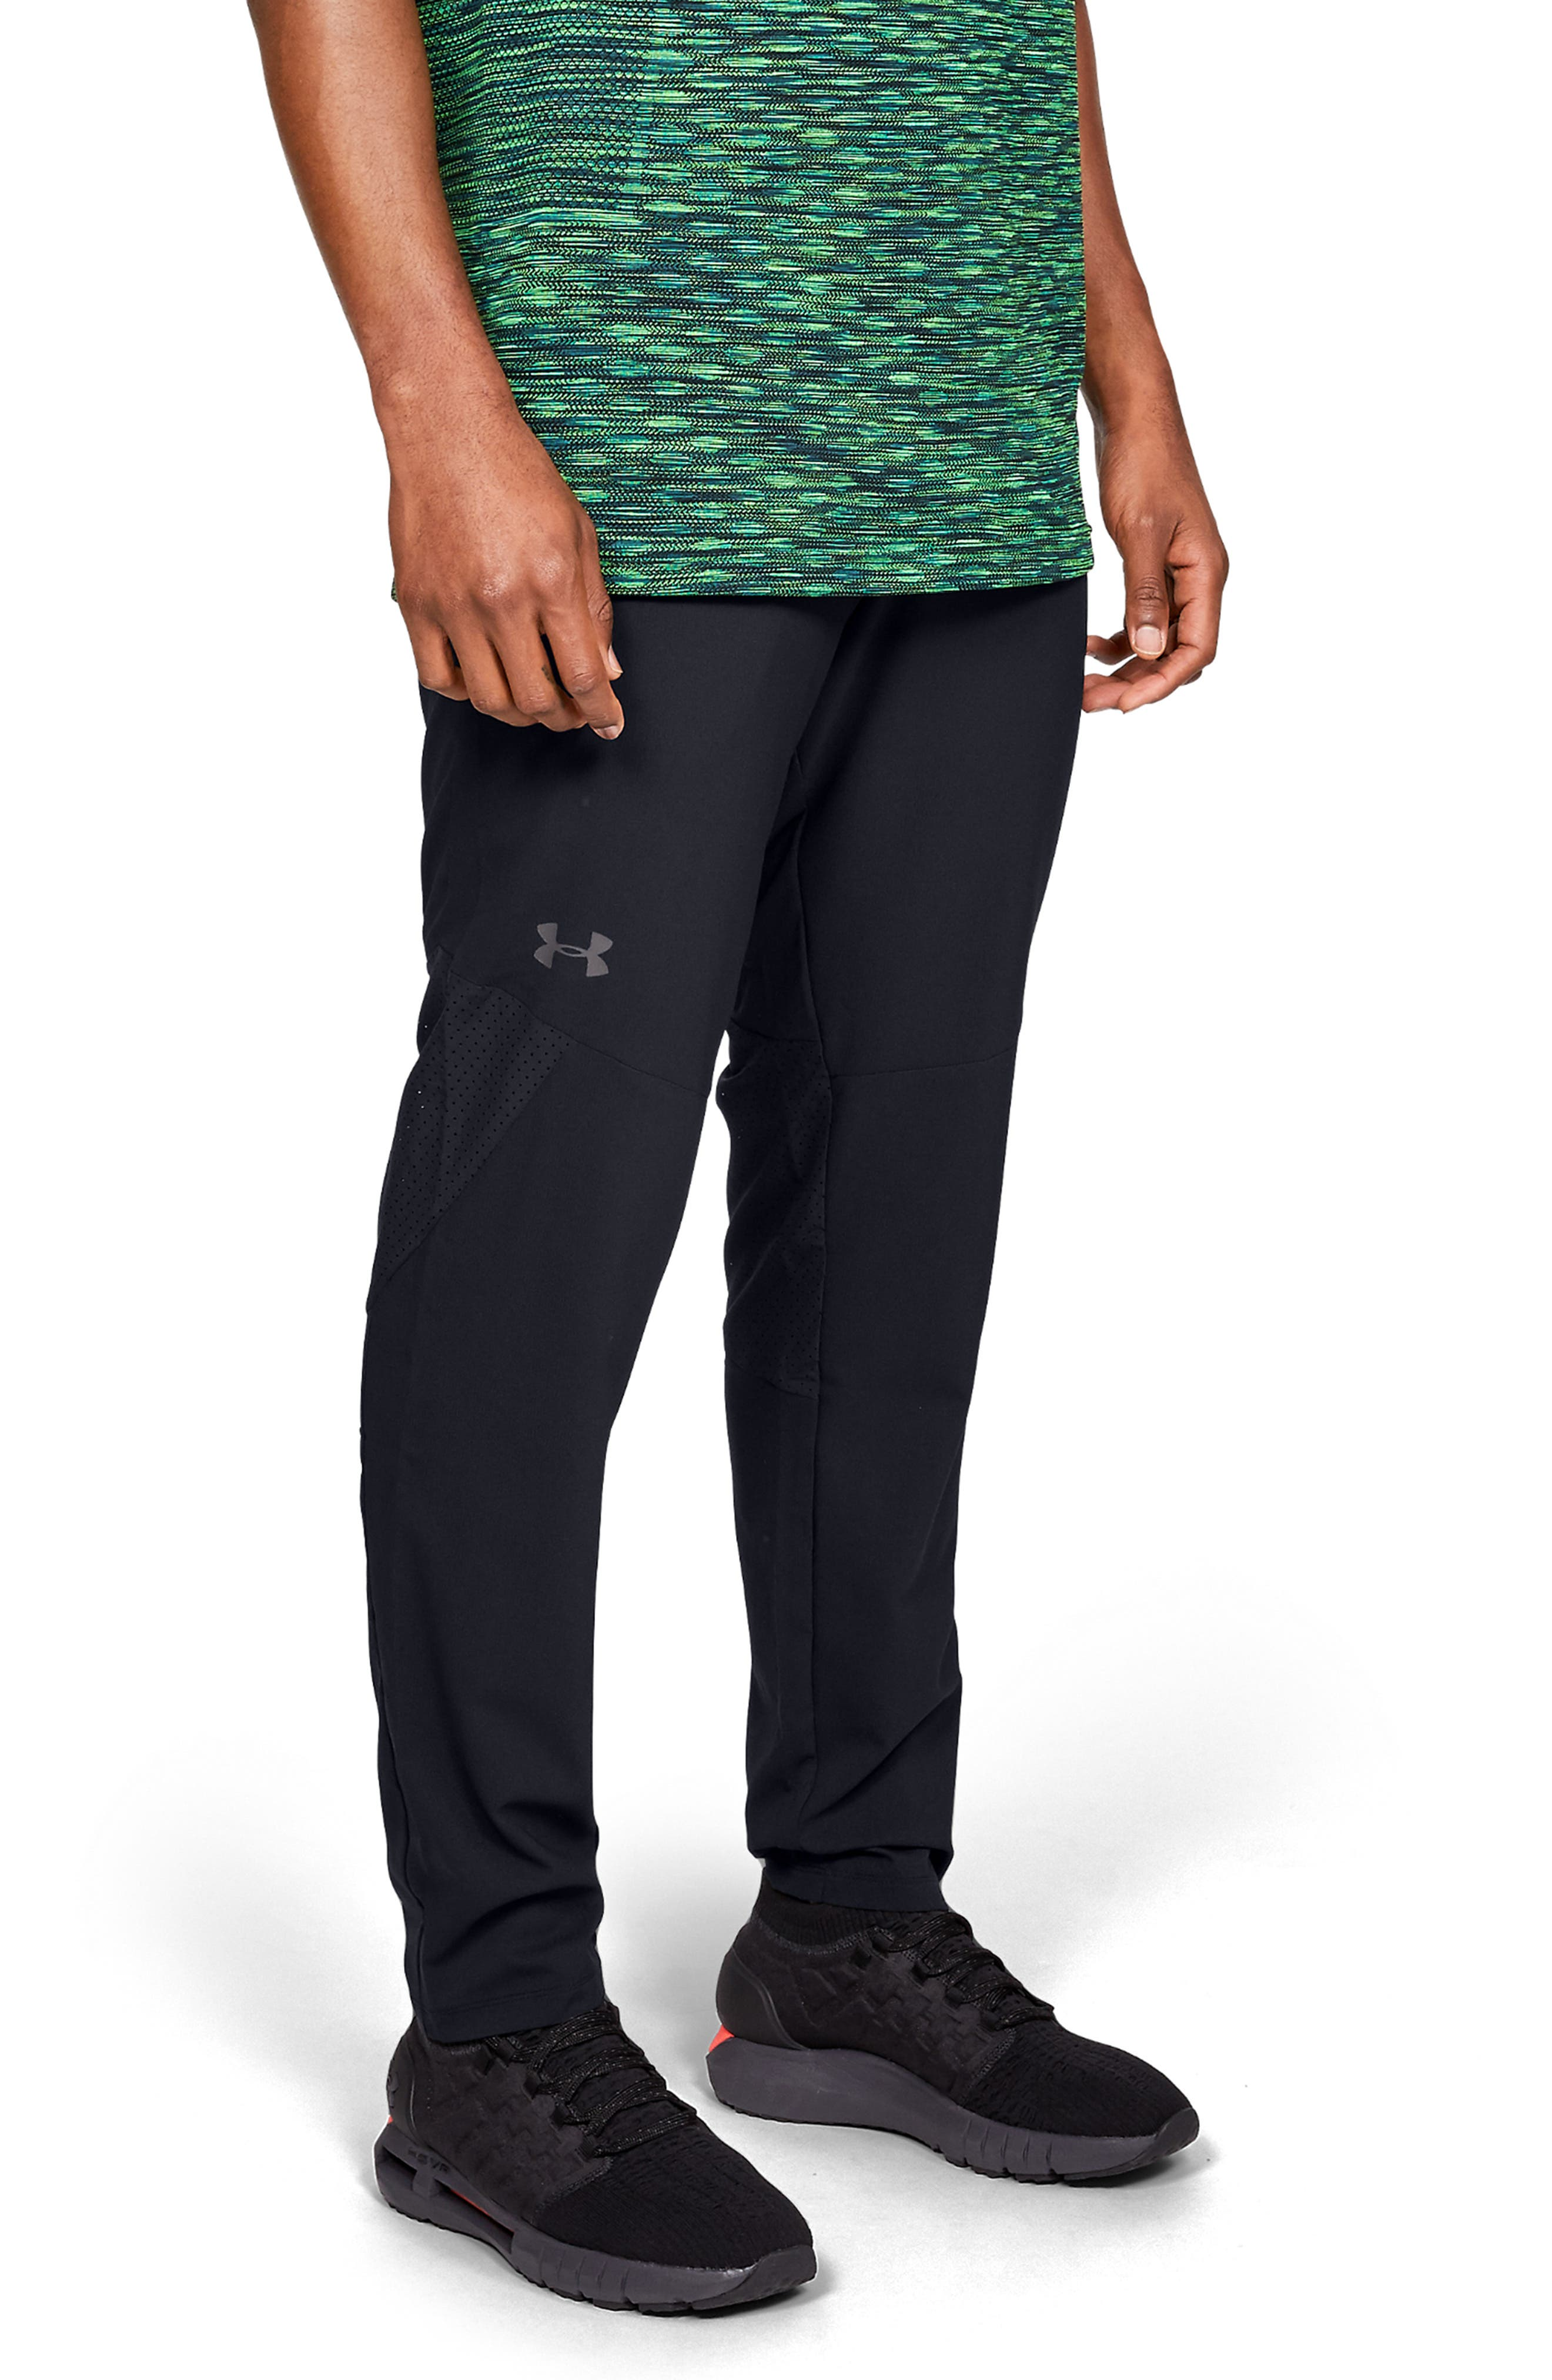 Black Men's Clothing Helpful Under Armour Heatgear Elevated Mens Training Pants